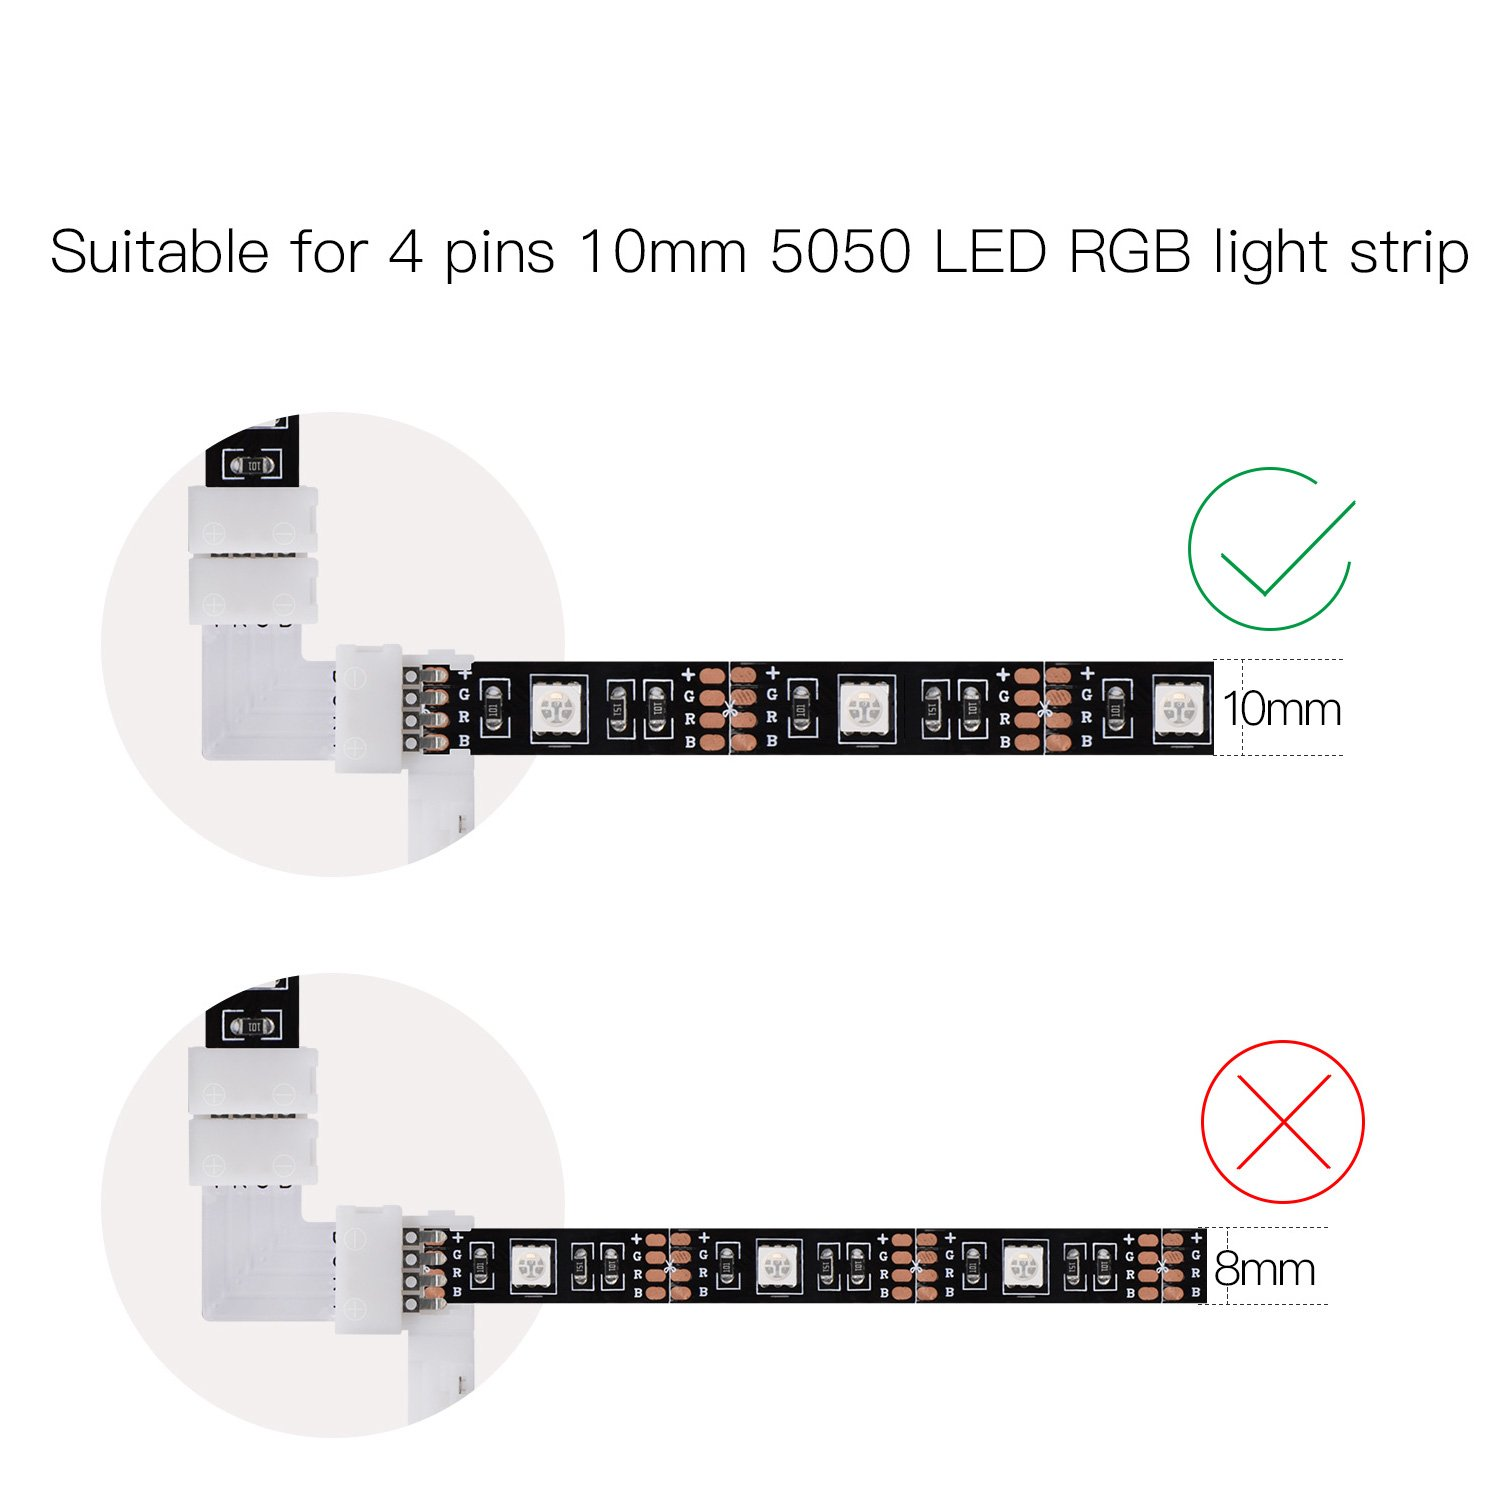 Color lines online strip game -  Connector Jackyled 10mm Non Waterproof Quick Splitter Right Angle Corner Connector 12v 72w Clip For 5050 3528 Smd Rgb 4 Conductor Led Strip Lights Strip